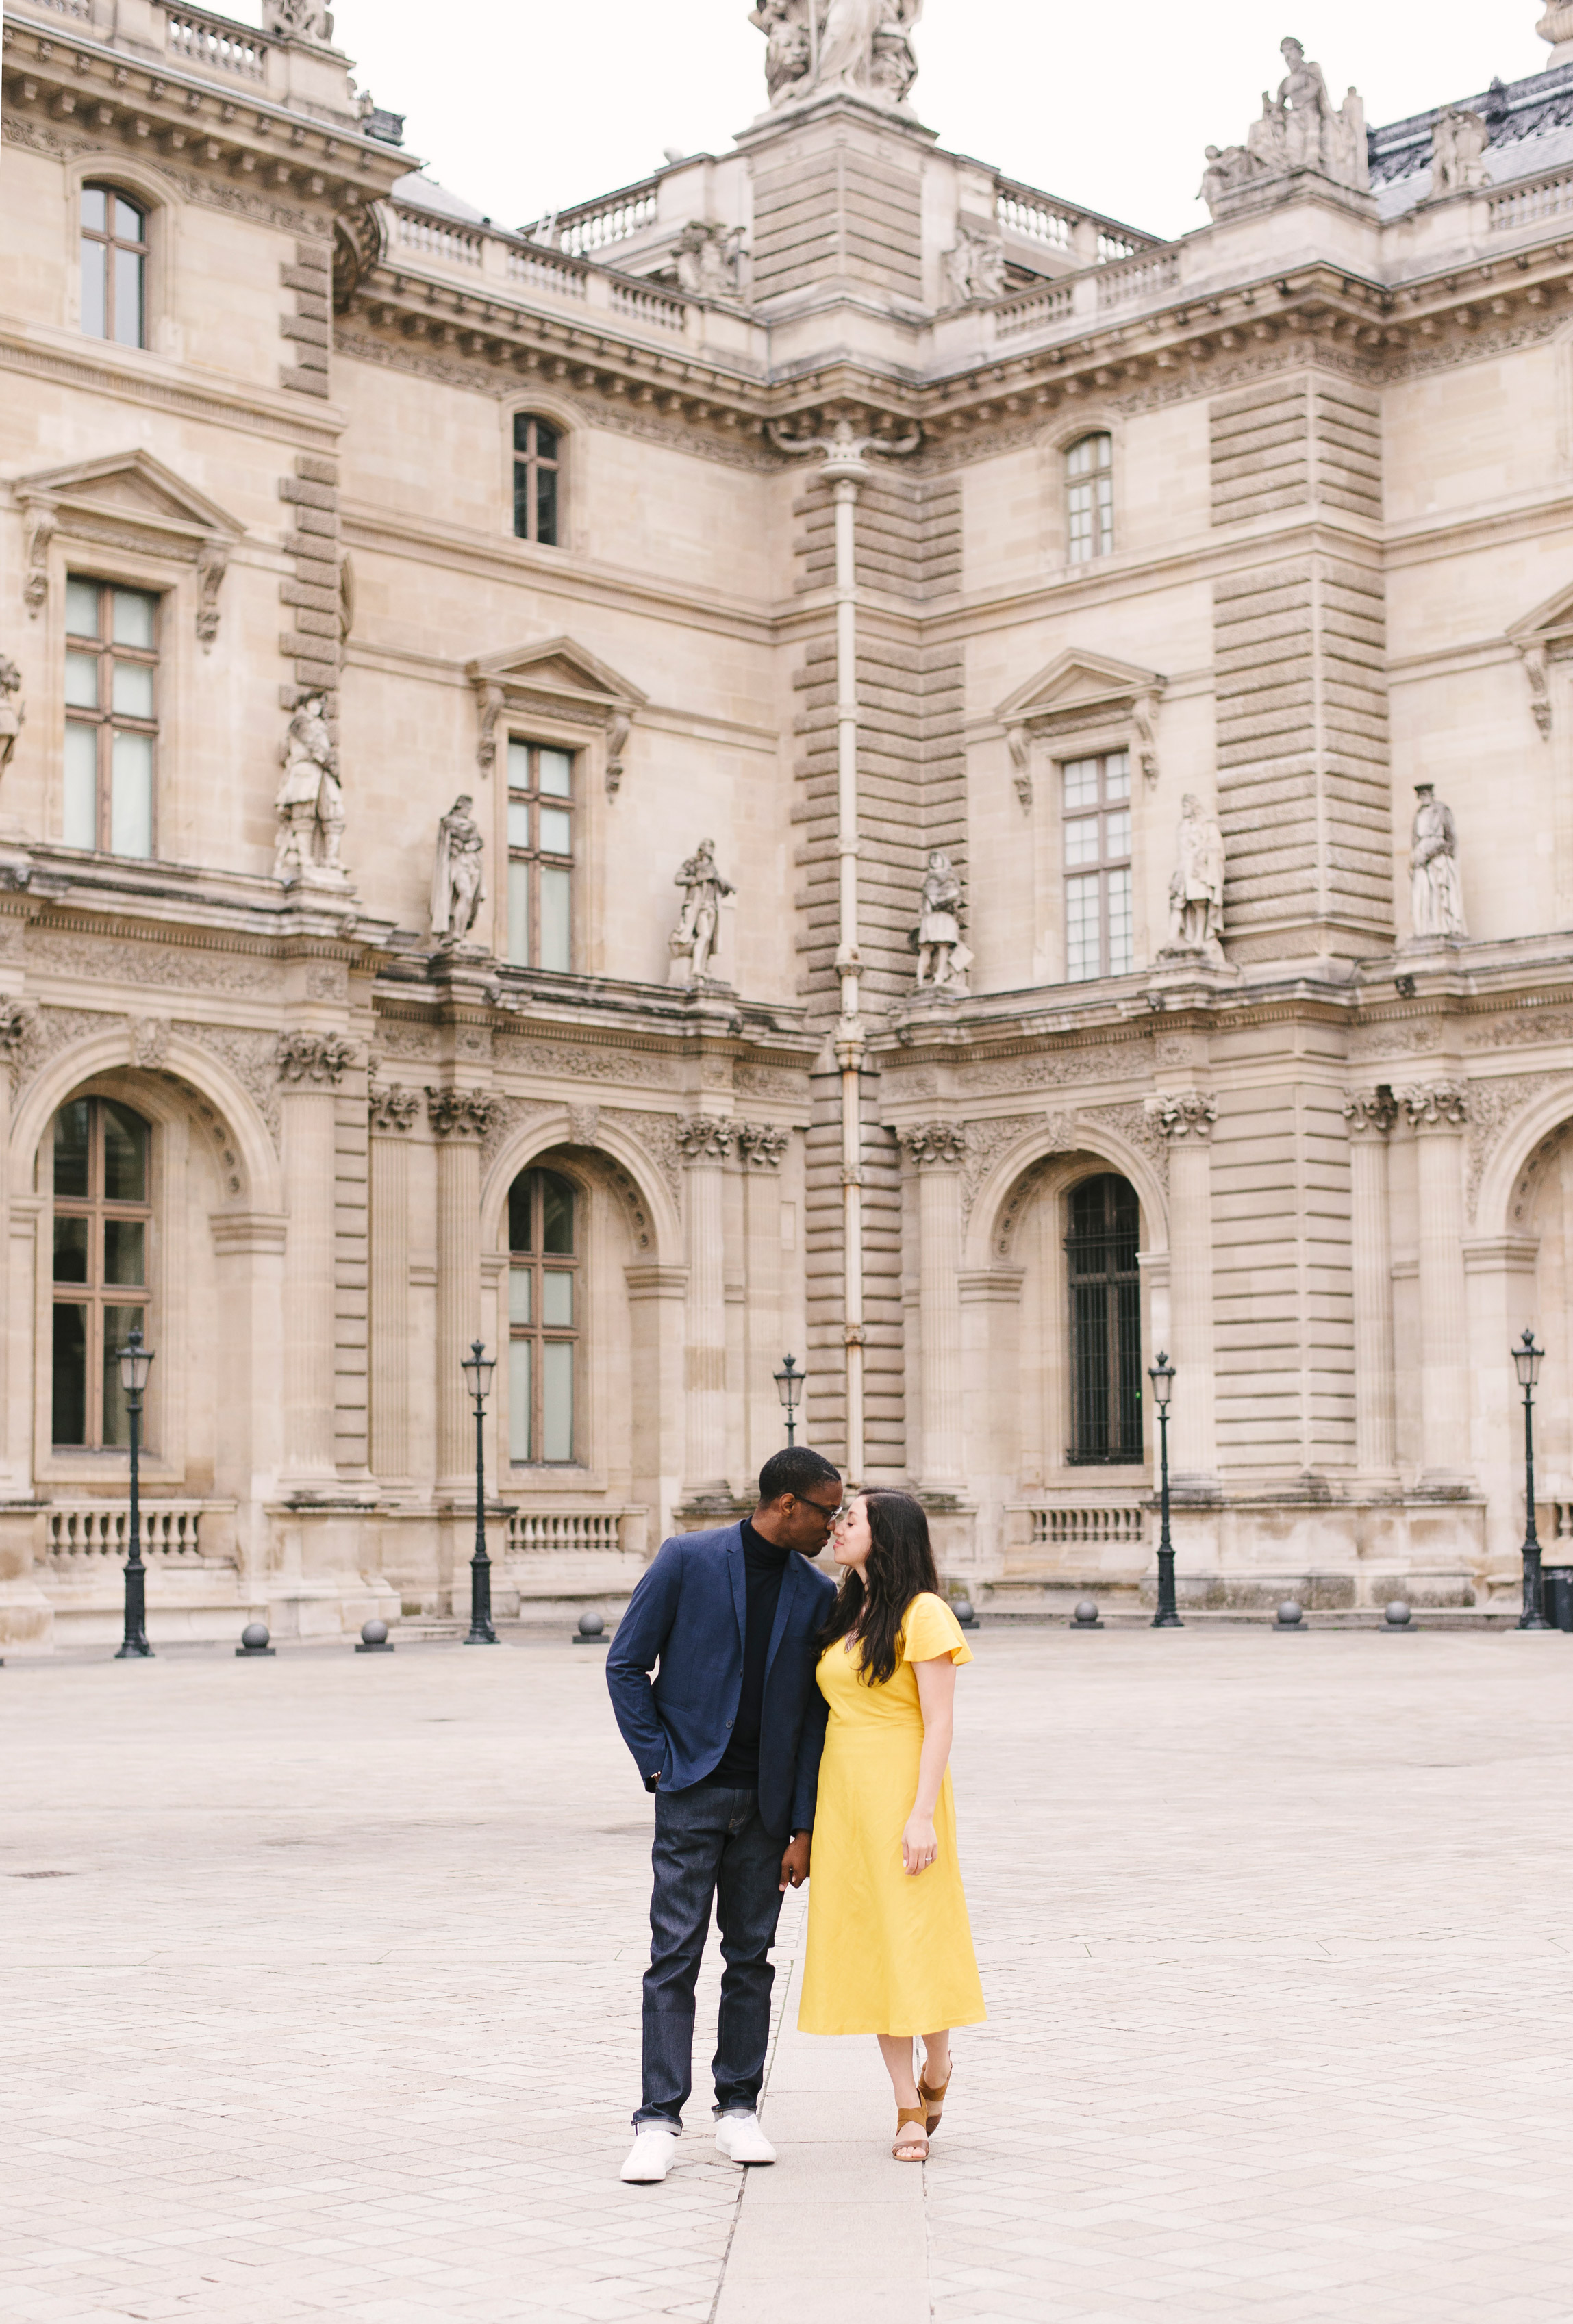 Couple-photoshoot-Paris-Pont-des-arts-Louvre-PalaisRoyale-064.jpg